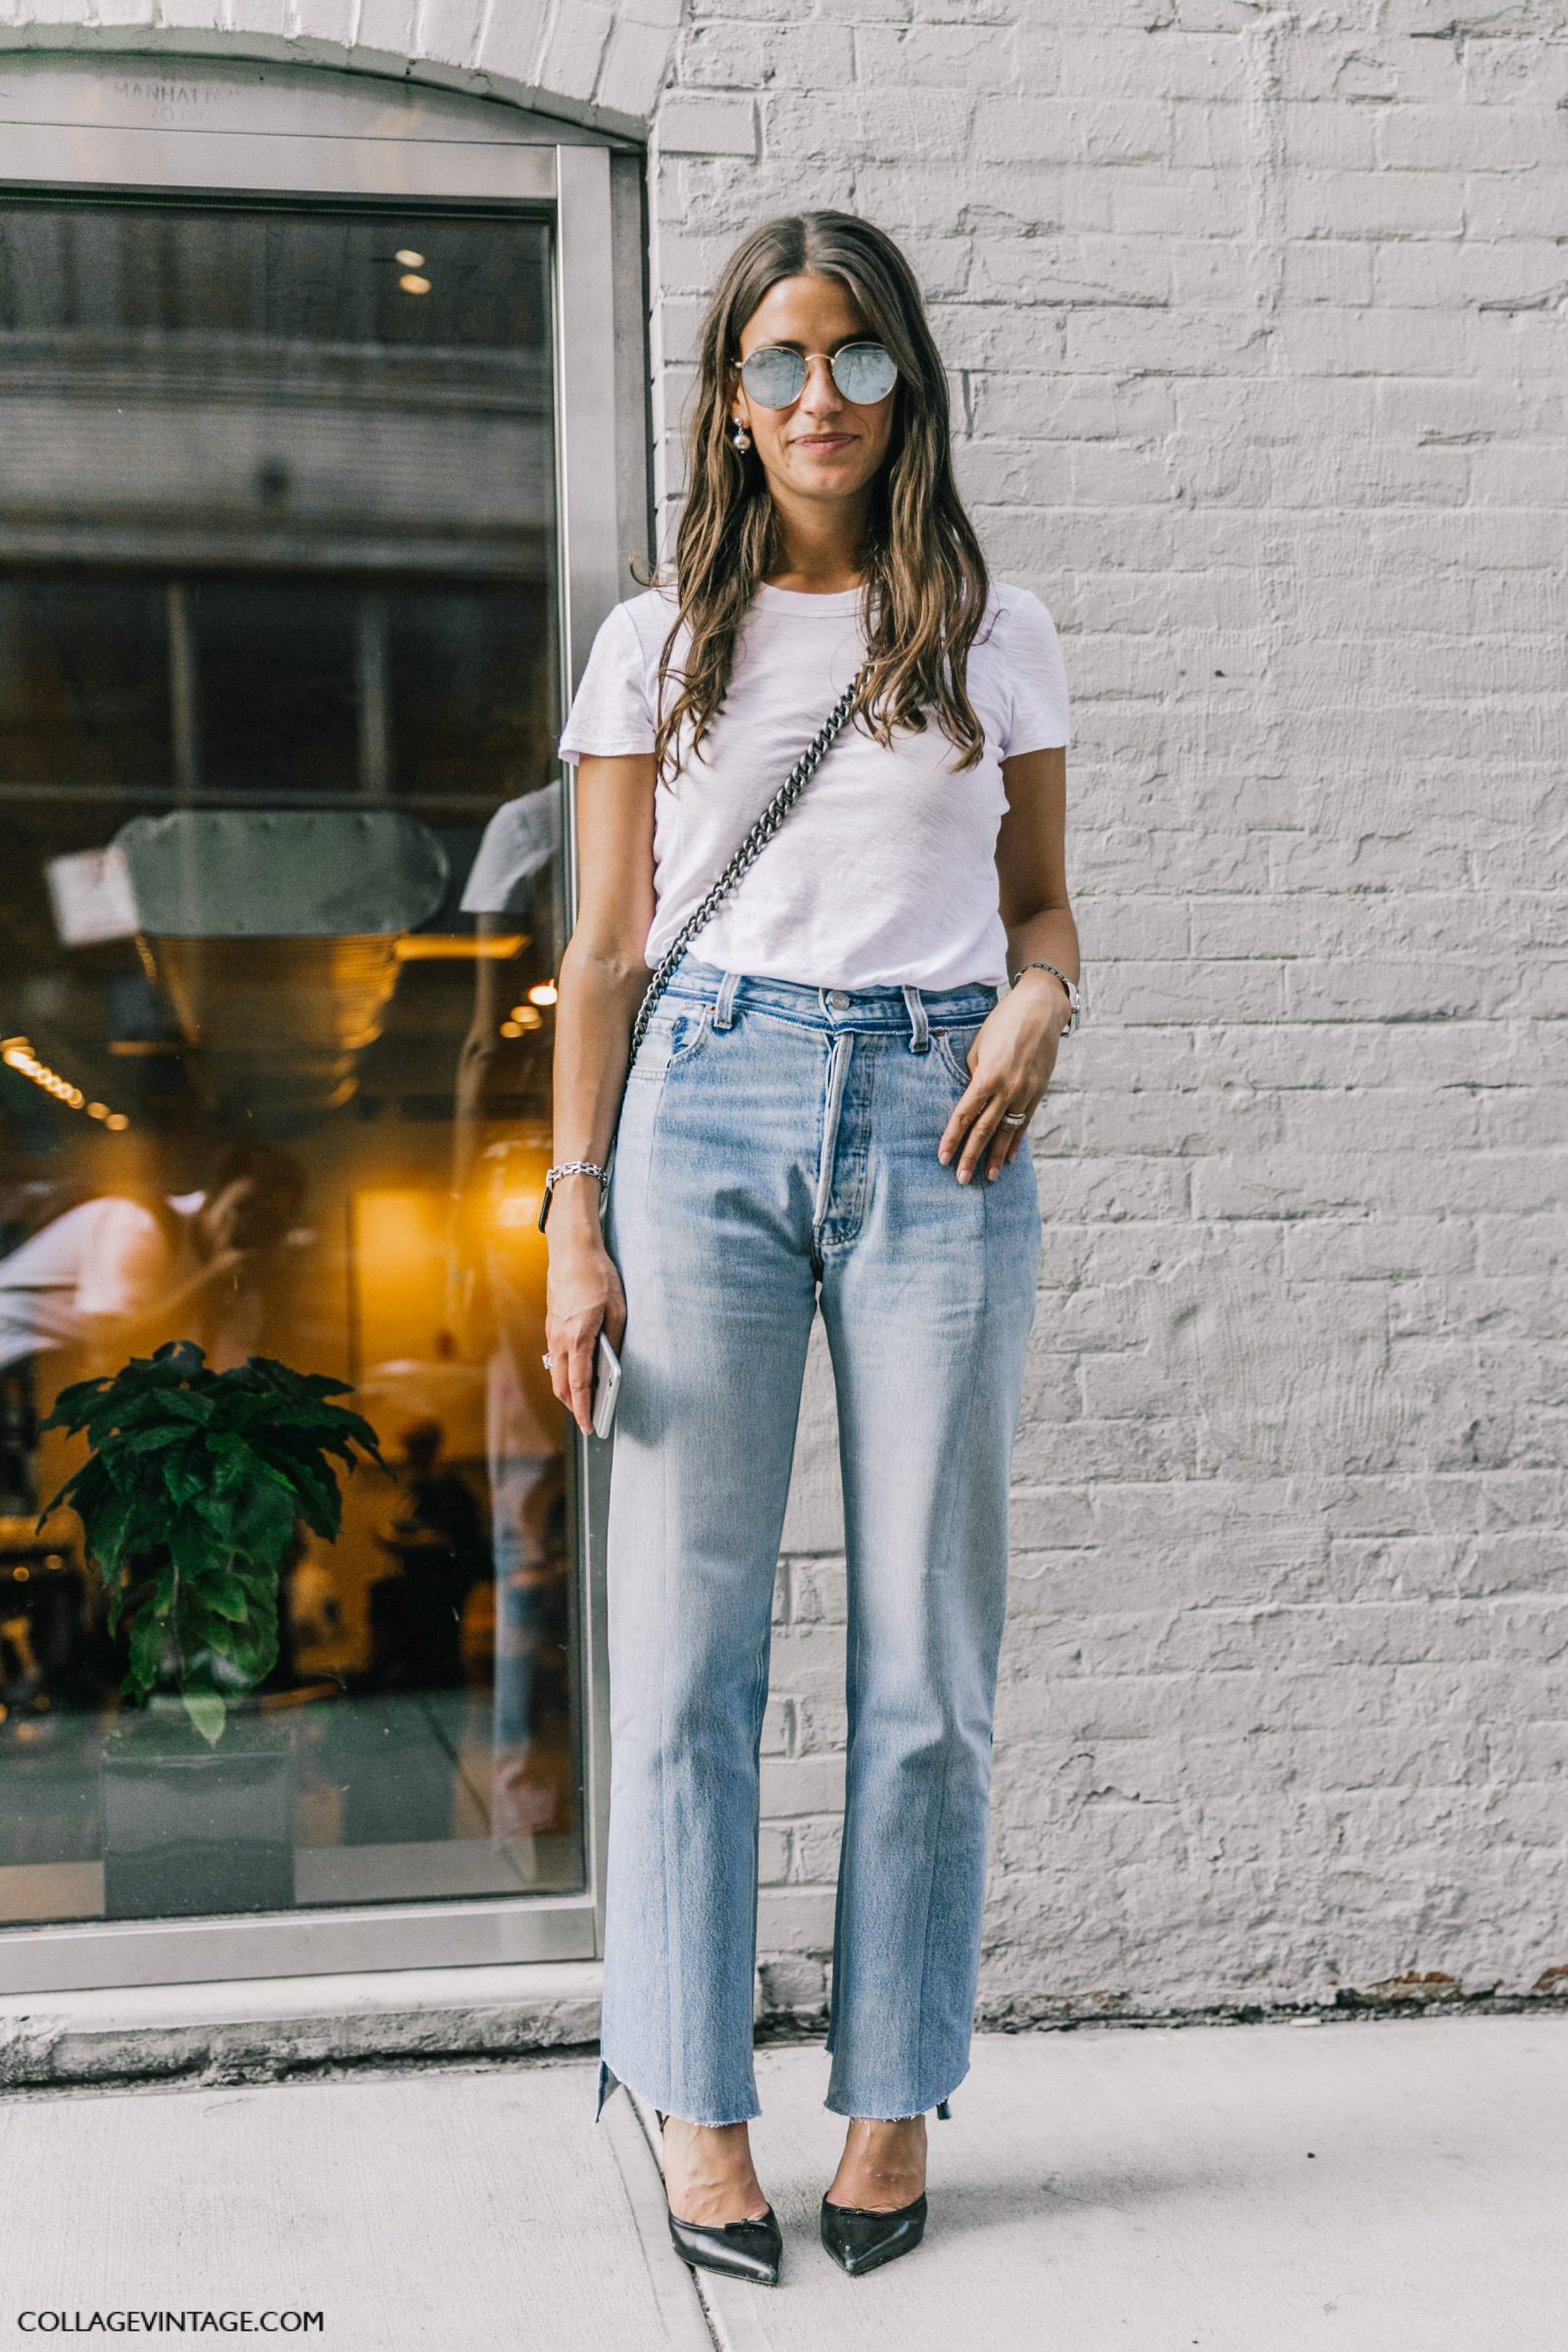 nyfw-new_york_fashion_week_ss17-street_style-outfits-collage_vintage-vintage-mansur_gavriel-rodarte-coach-257